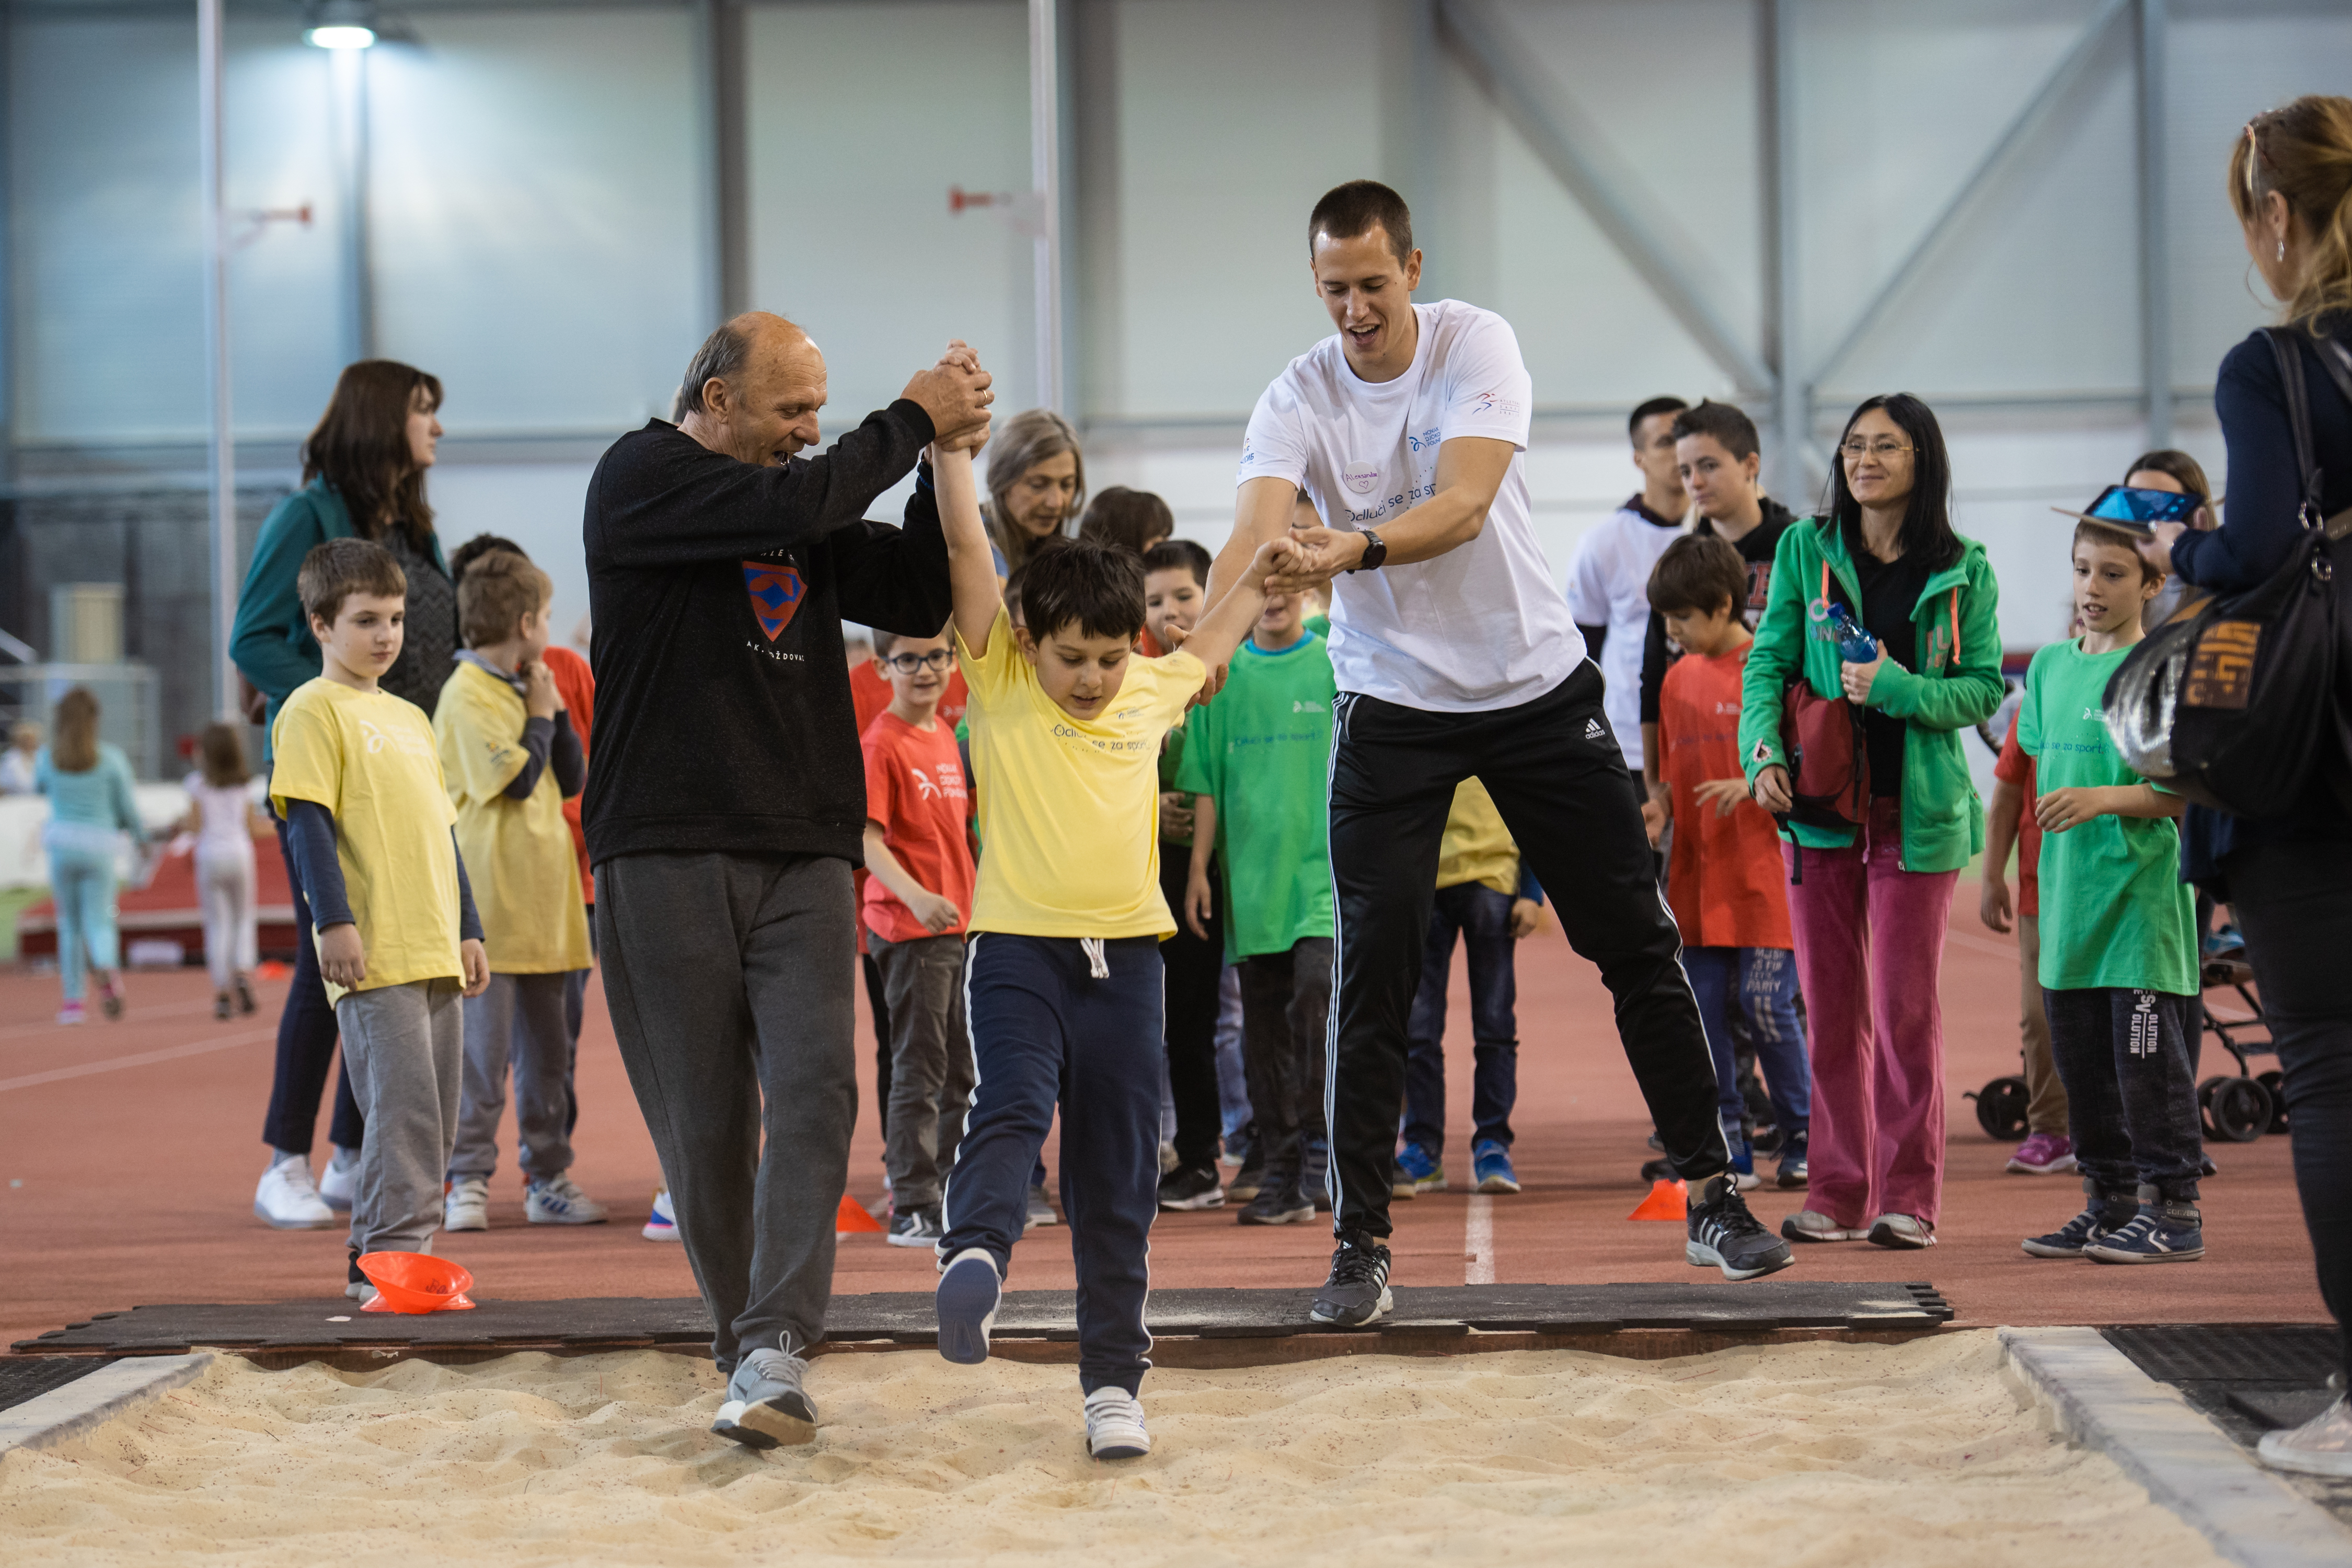 Coaches of three major domestic athletics teams – Red Star, Partizan and Vozdovac created the exercises just for this occasion.